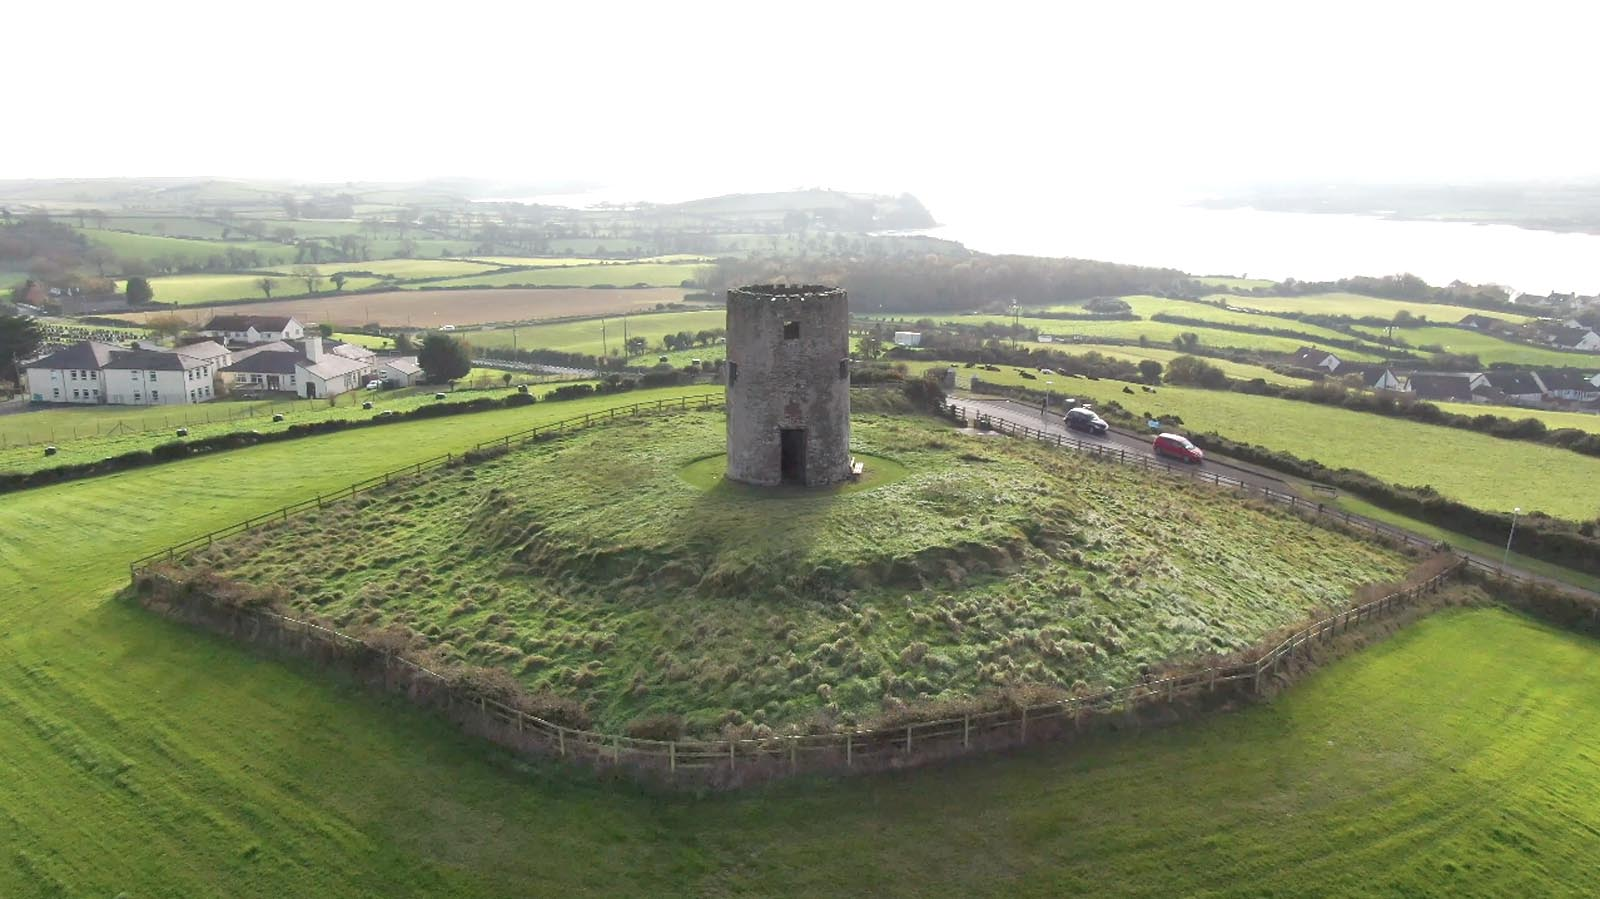 Aerial drone photography and video production services Dublin and Ireland portfolio - screenshot 1 of Portico Ards video